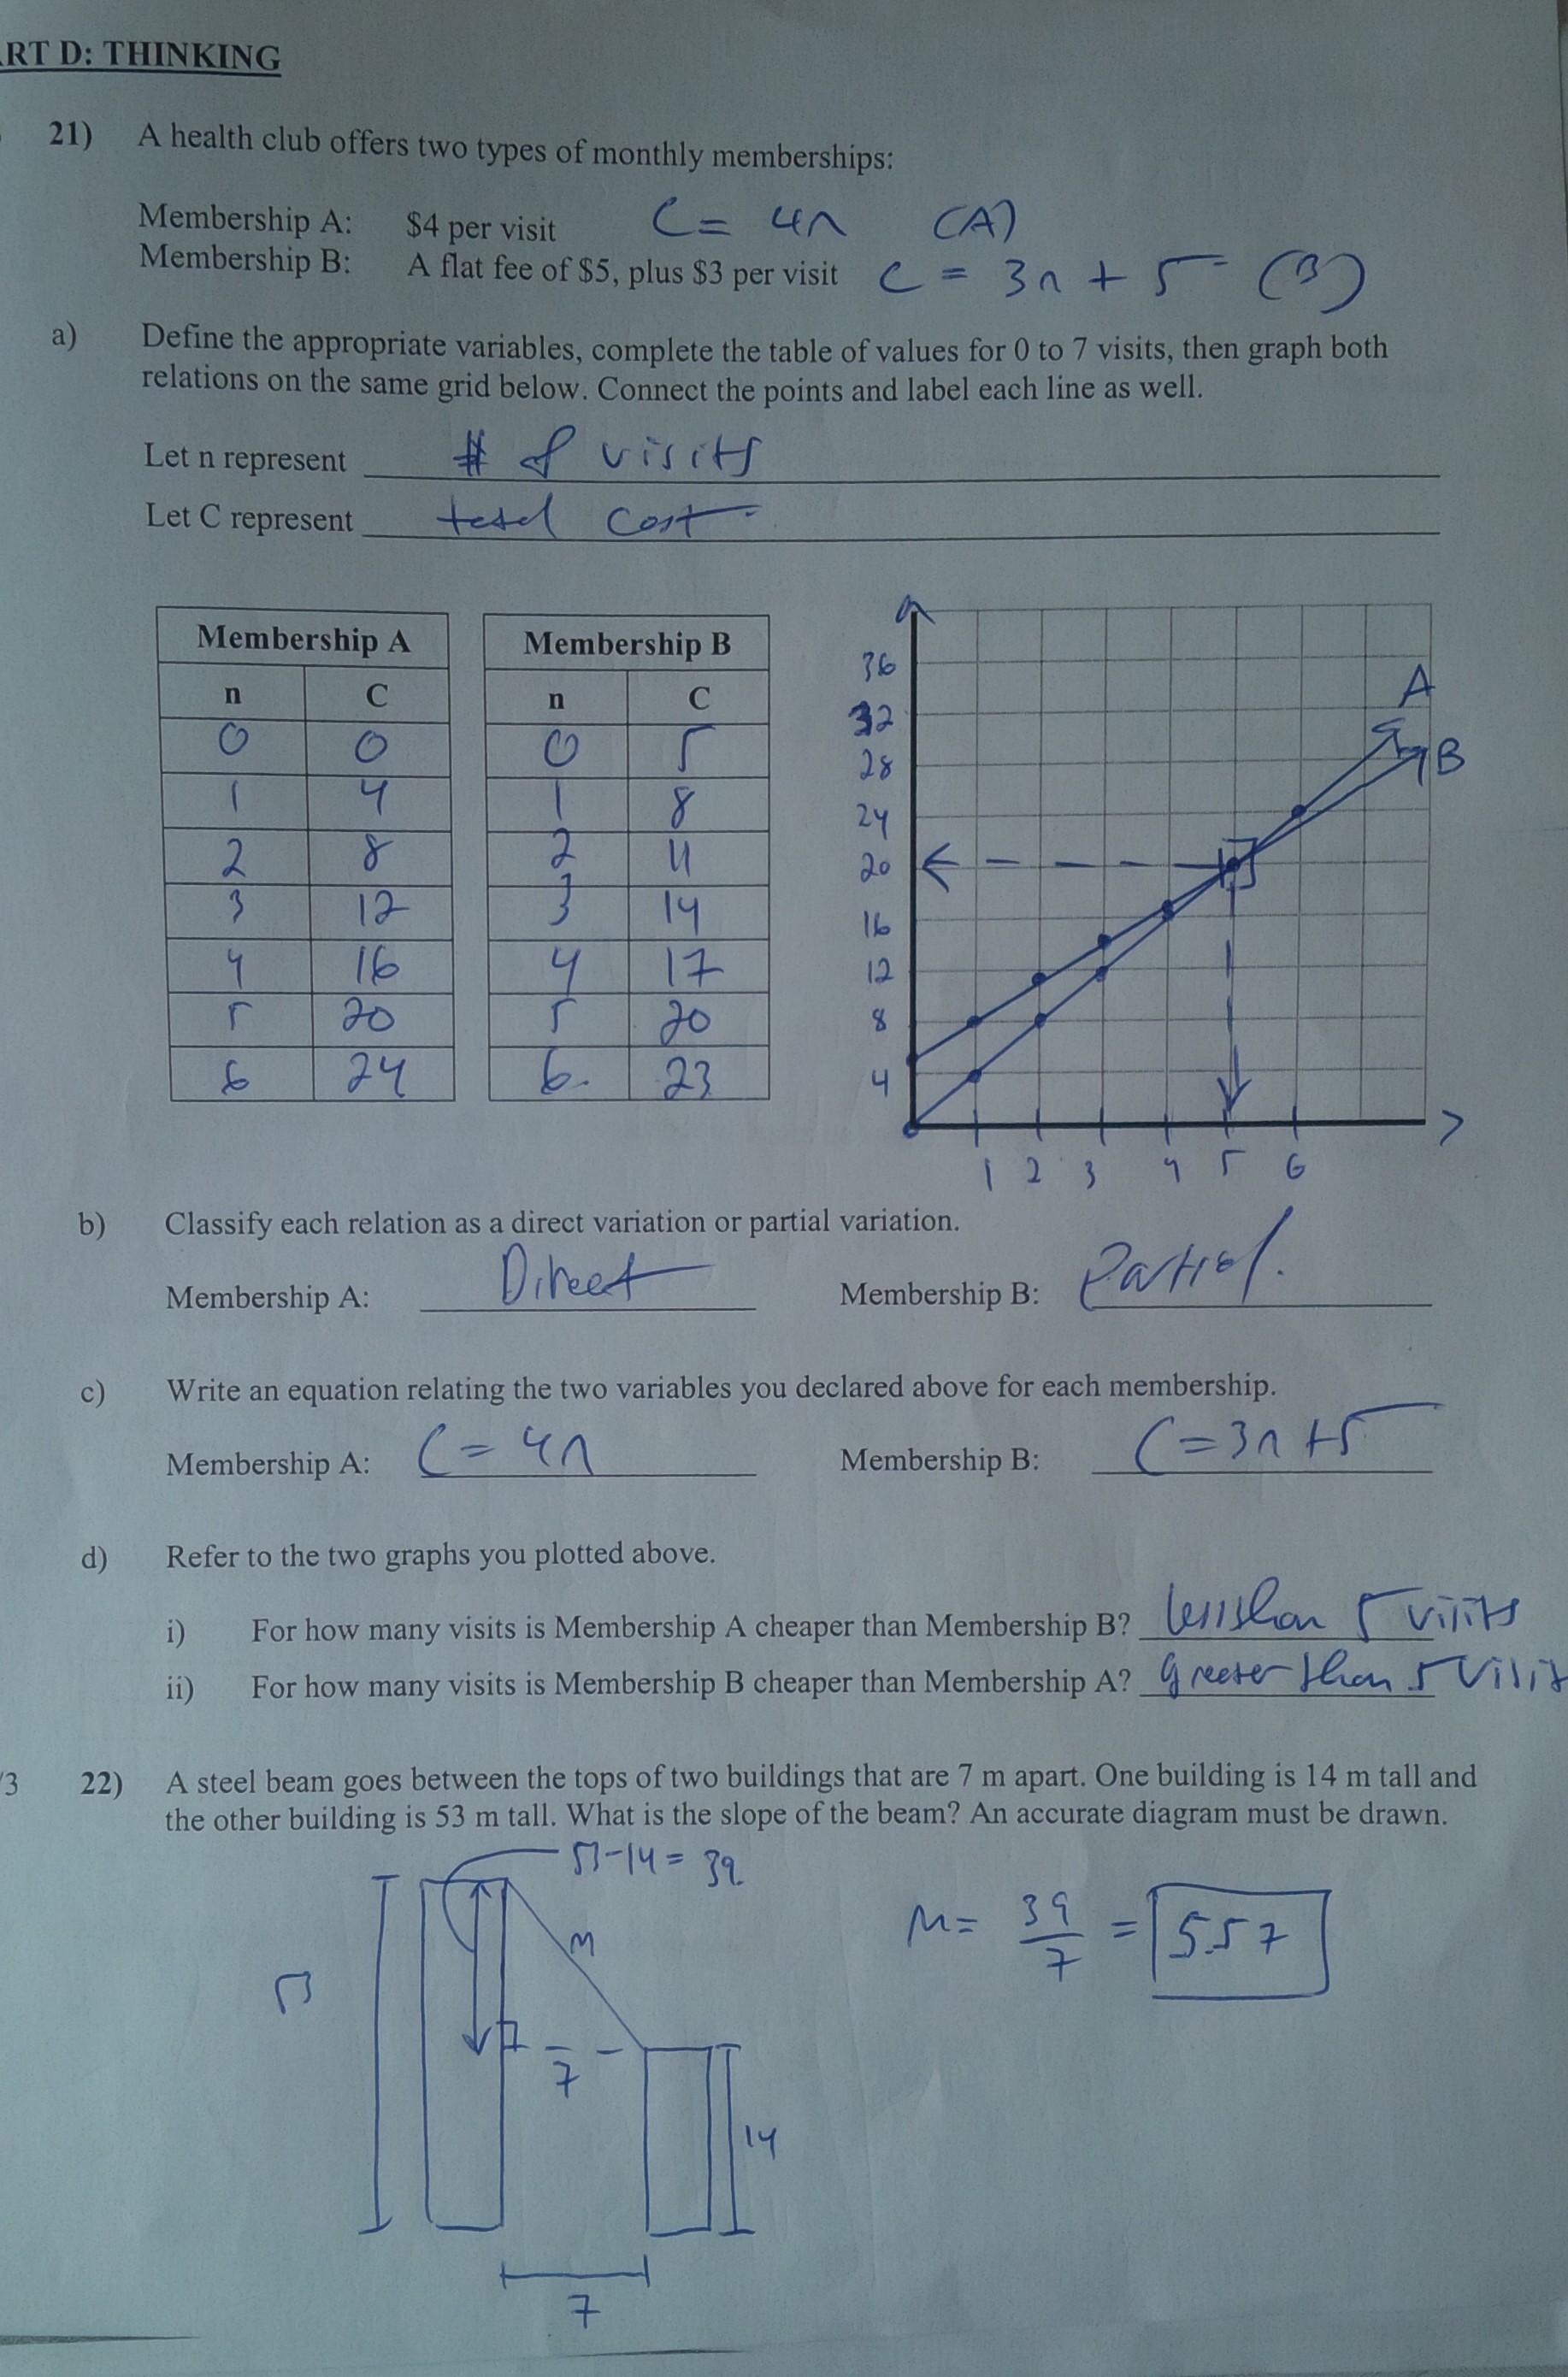 Academic Math Application Of Direct And Partial Variation